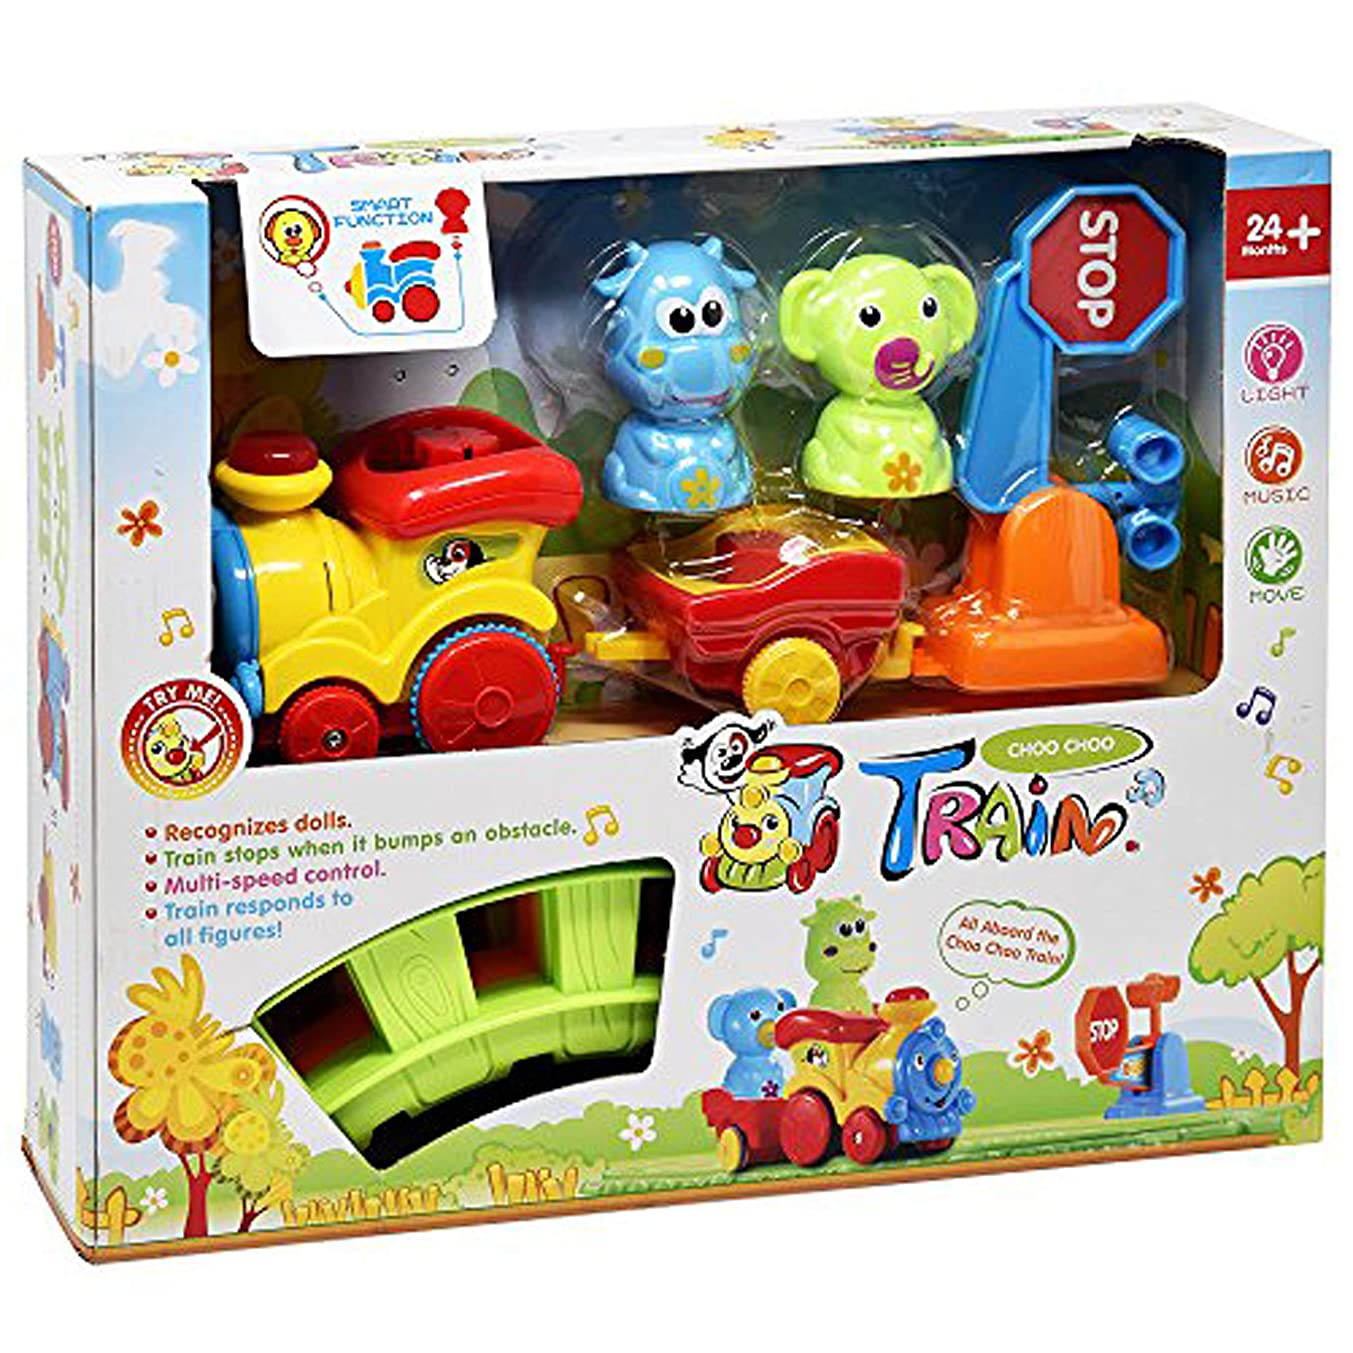 Train Set for Toddlers - Music Train Toy Includes Choo Choo Train Tracks and Motorized Train Cars with Animals - Educational Playset for Boys and Girls